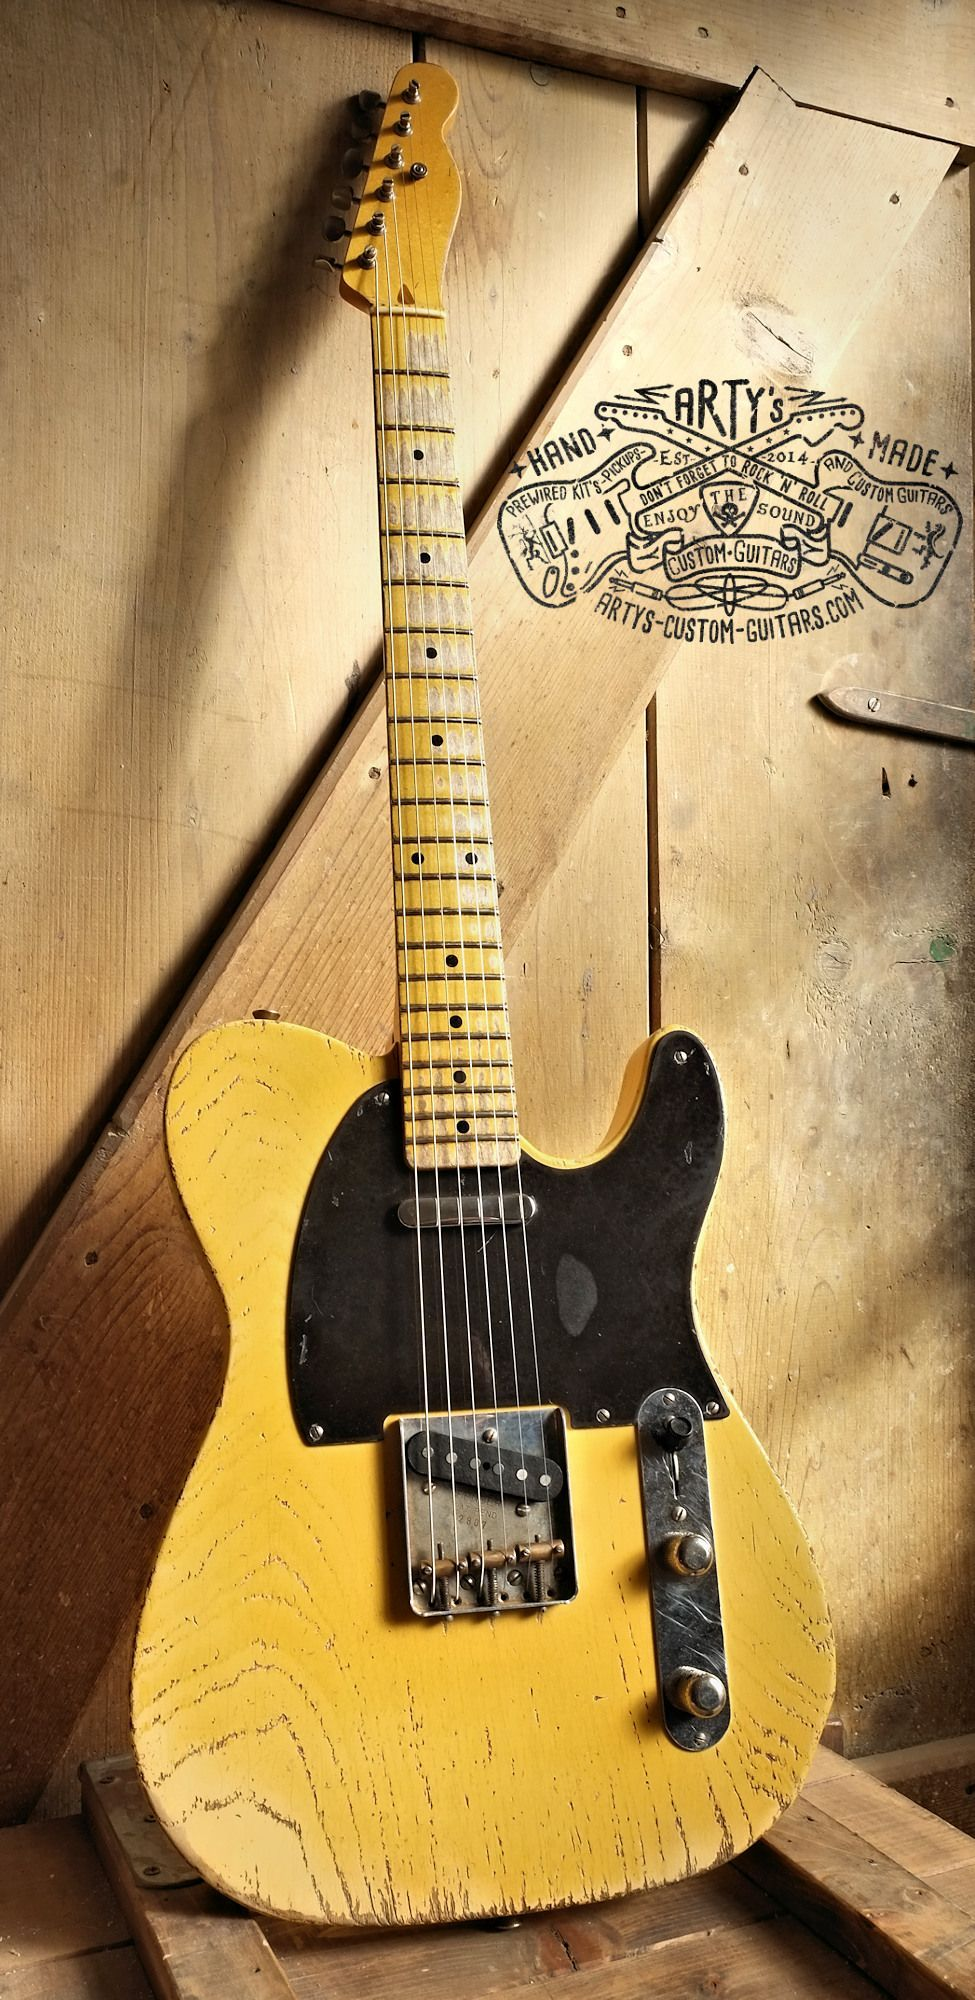 Squier Telecaster Wrhb Wiring Diagram from i.pinimg.com